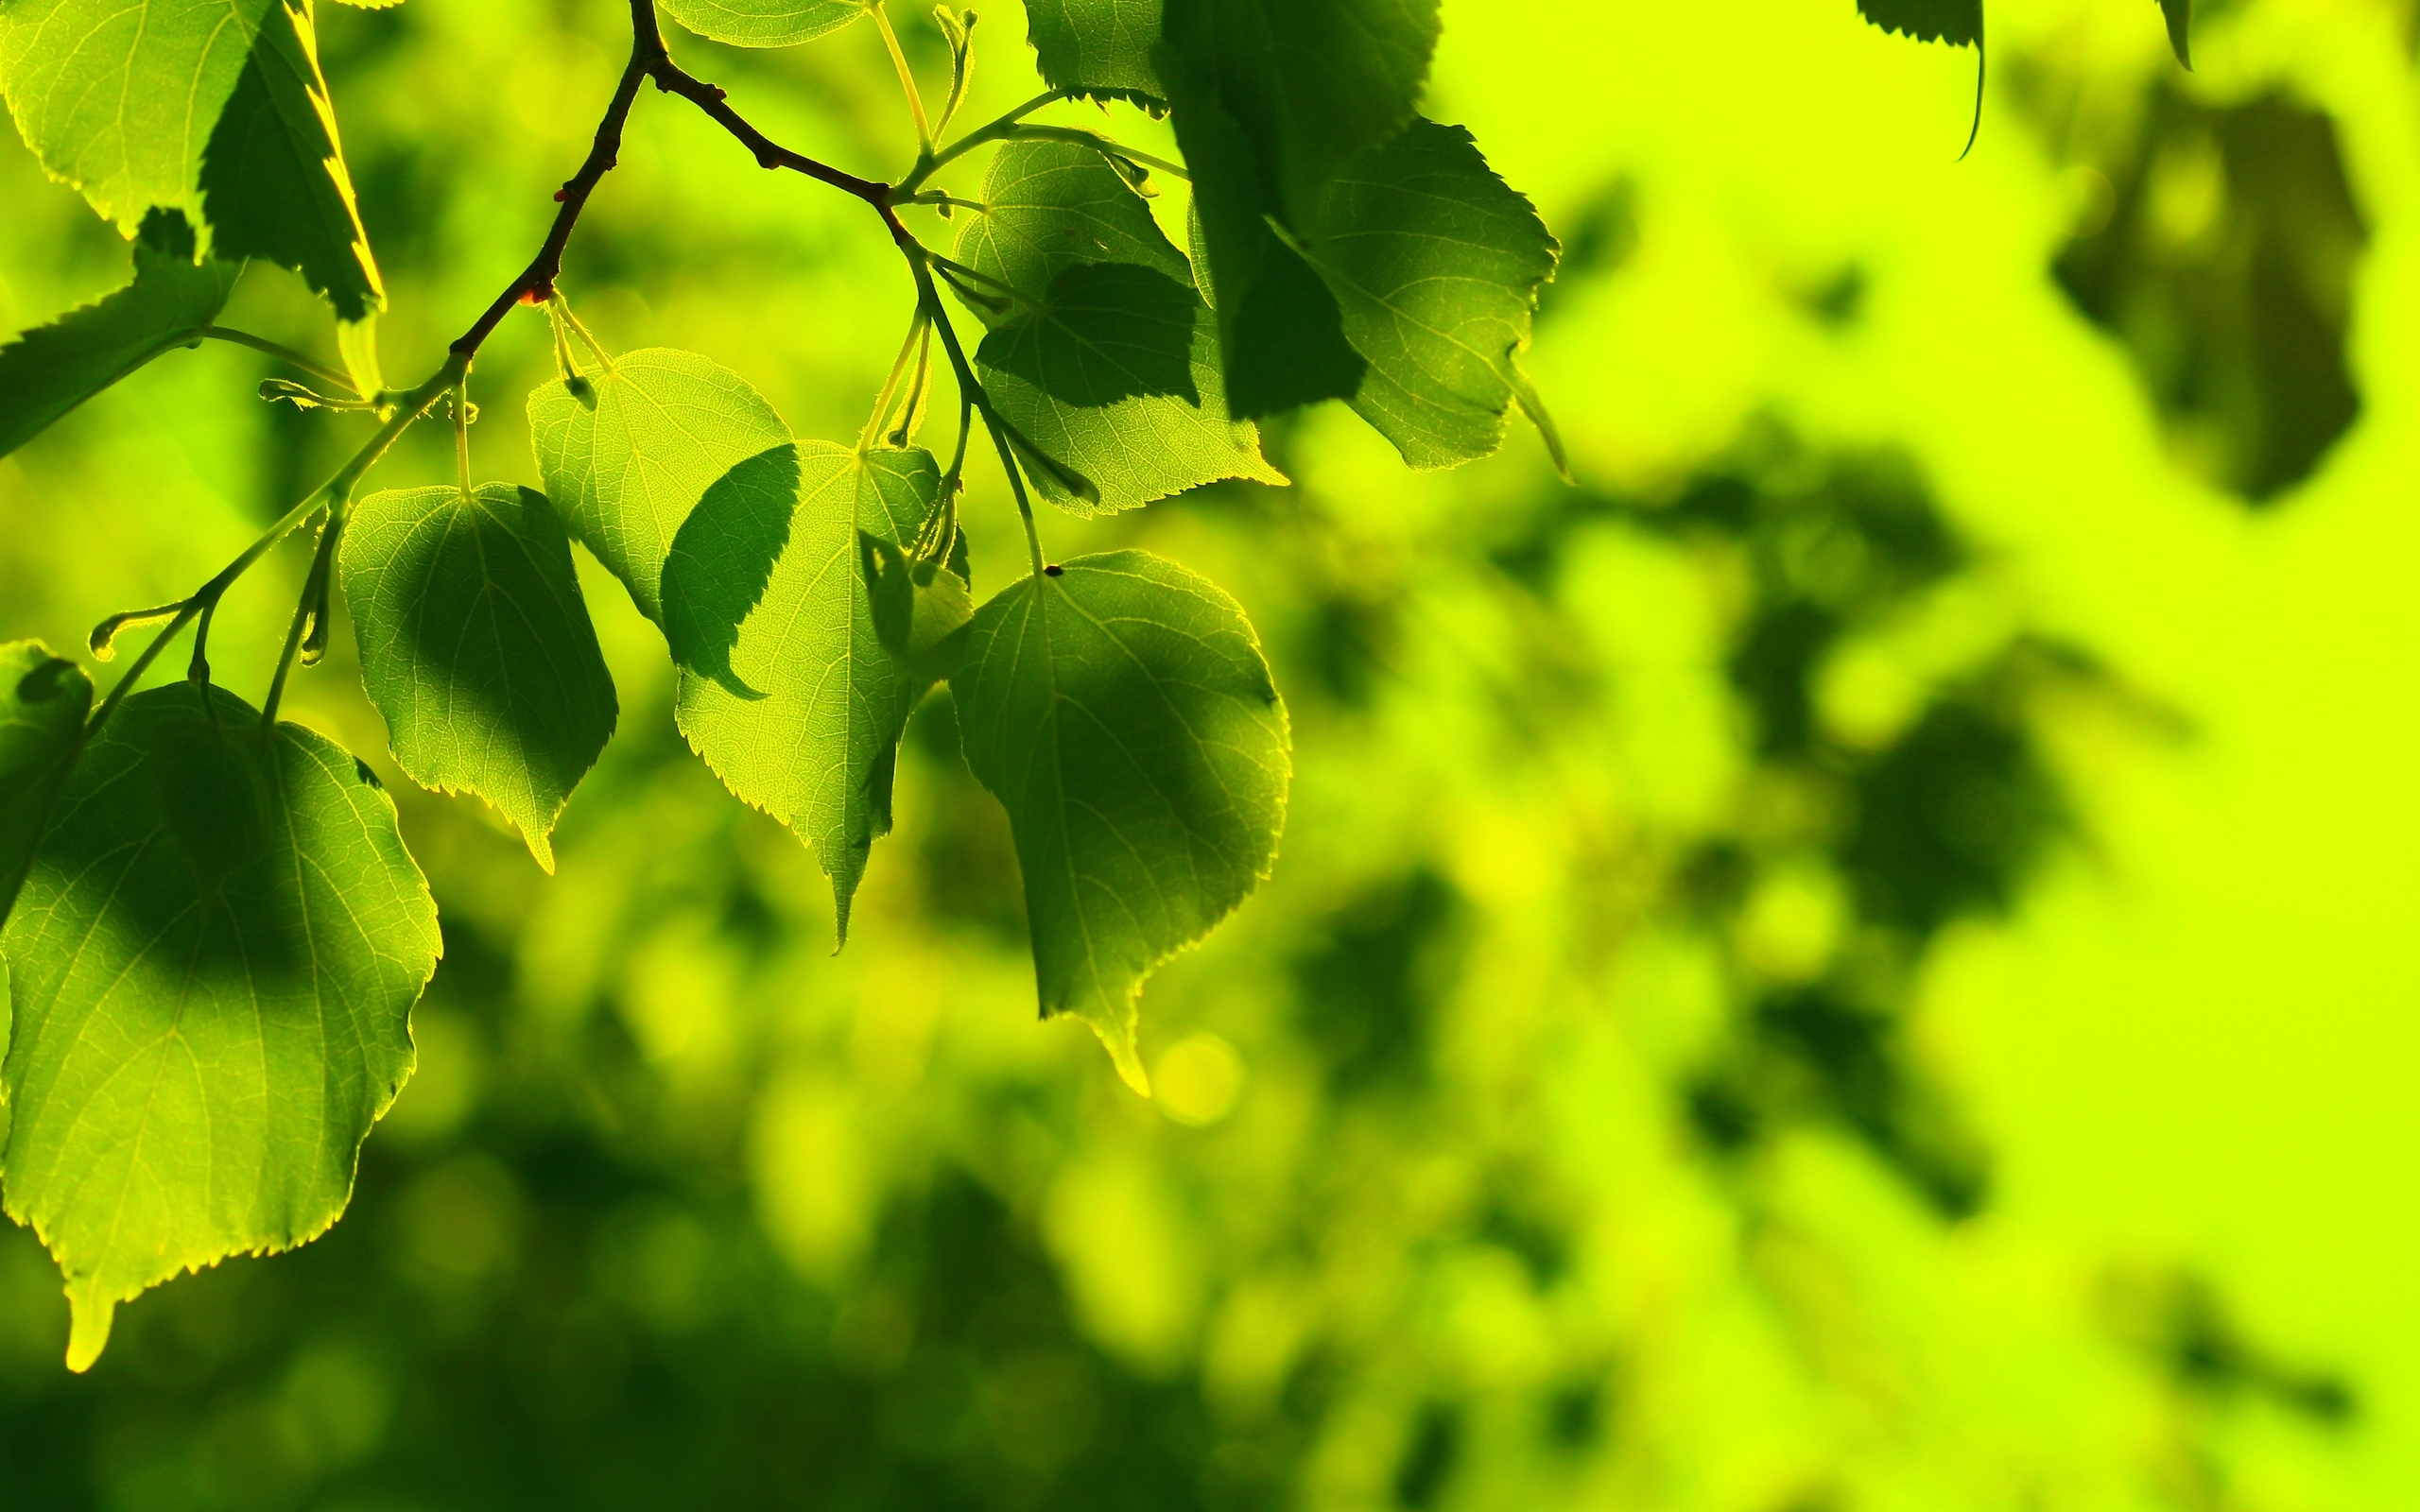 43771 download wallpaper Leaves, Objects screensavers and pictures for free